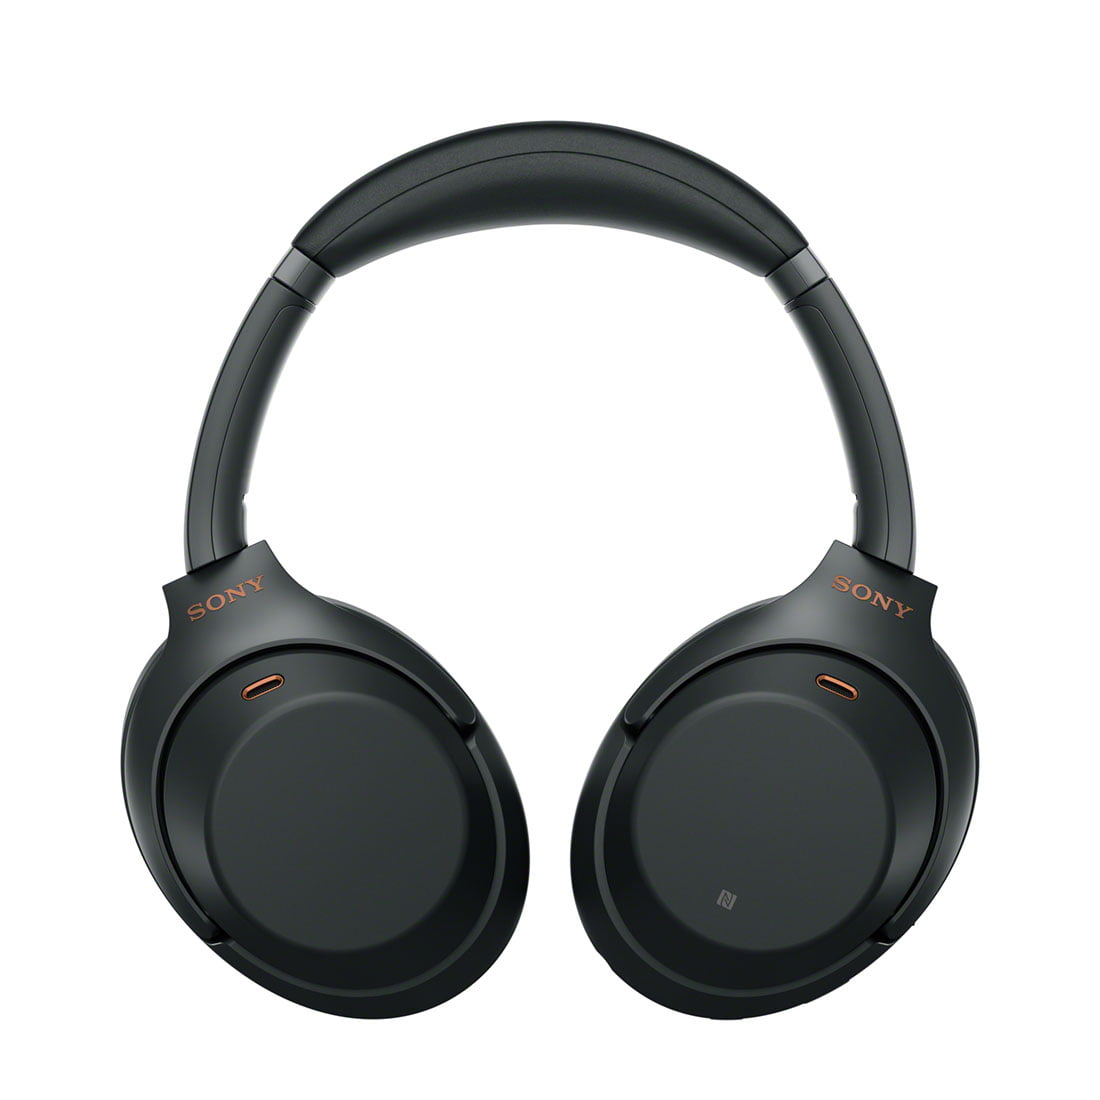 Sony Wh 1000xm3 Wireless Industry Leading Noise Cancelling Overhead Wiring Diagram Building Canceling Headphones Microphone Need Help